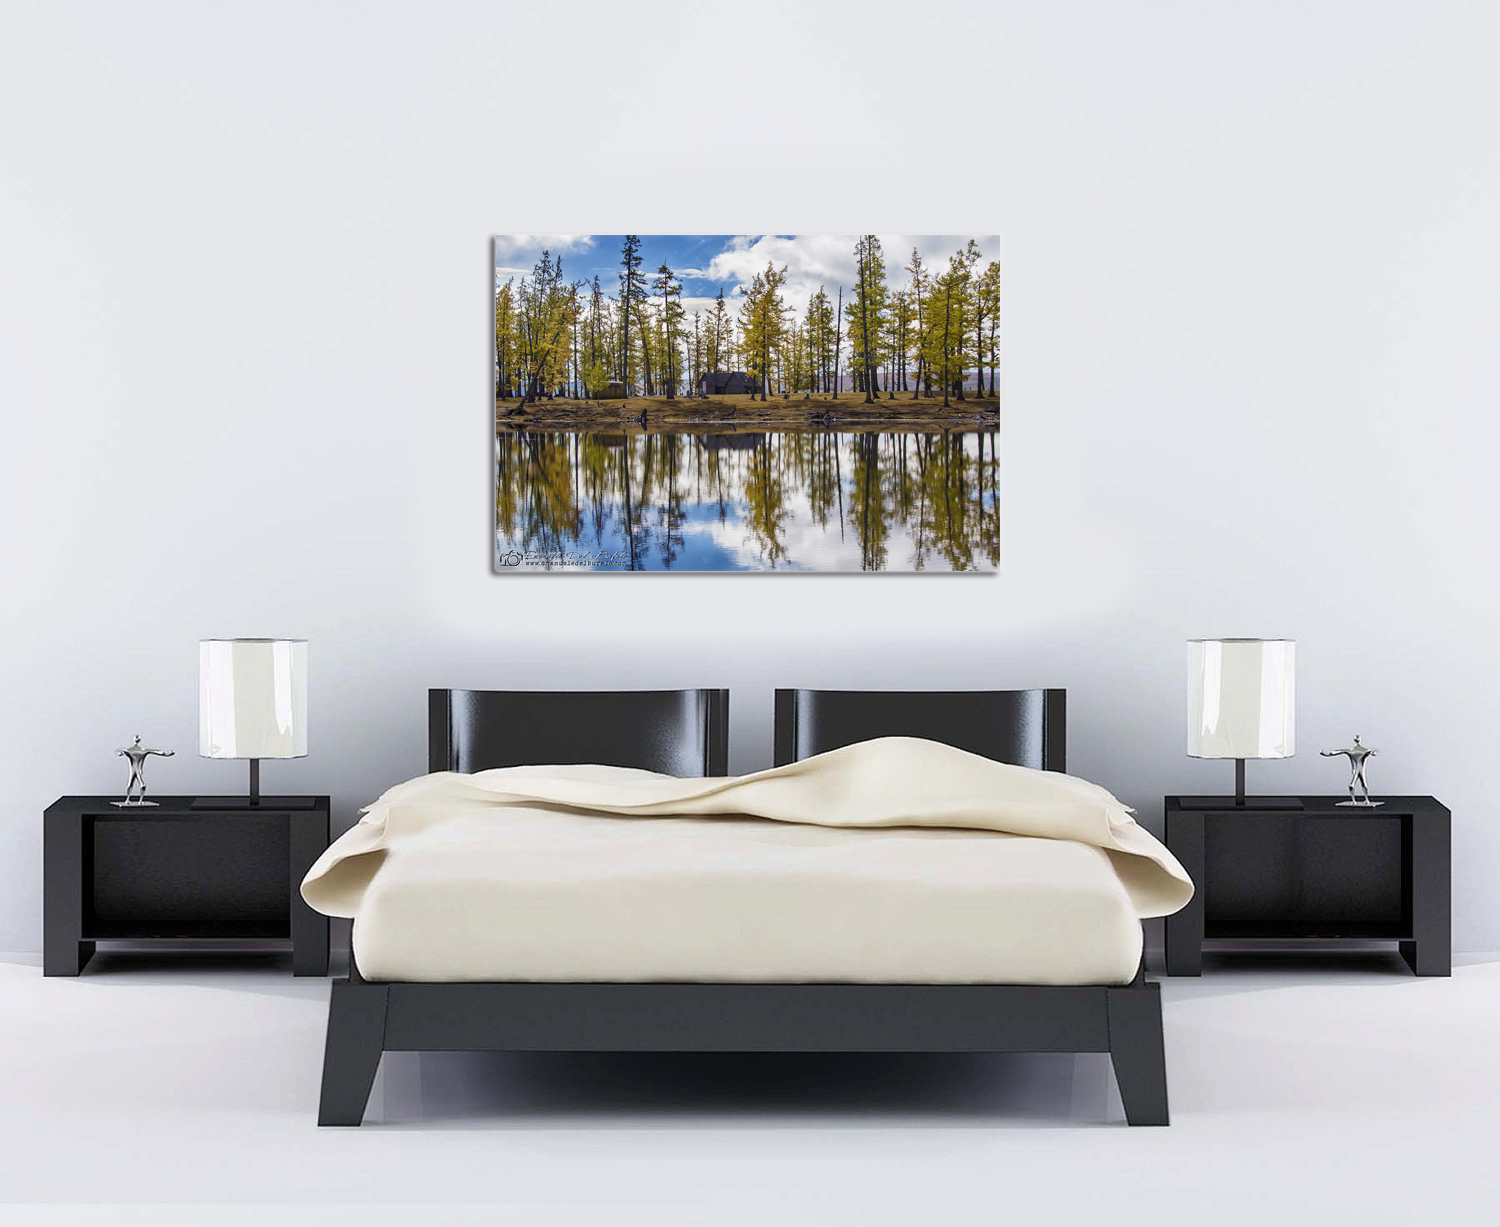 Mirror Lake Mongolia ProportionOK 2m bed 100cm photo